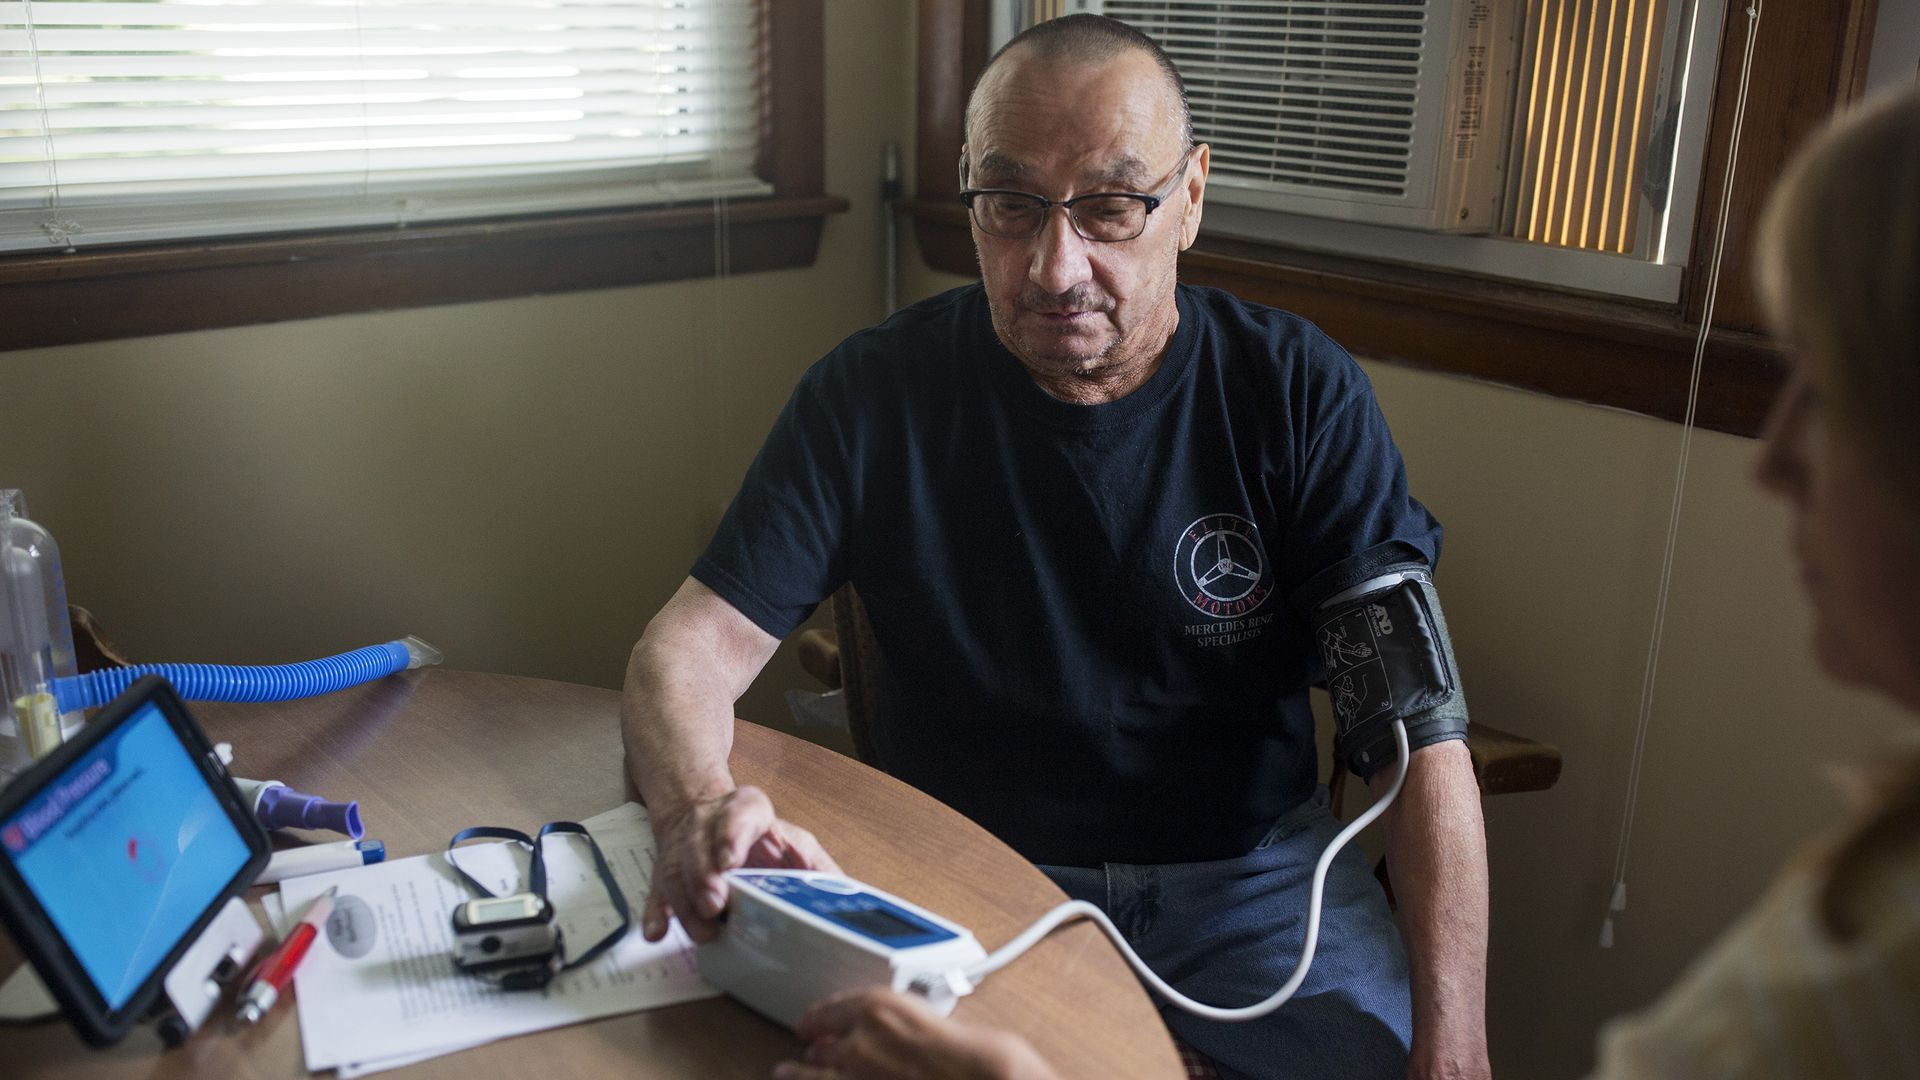 A man measures his vitals and sends the data electronically to nurses.